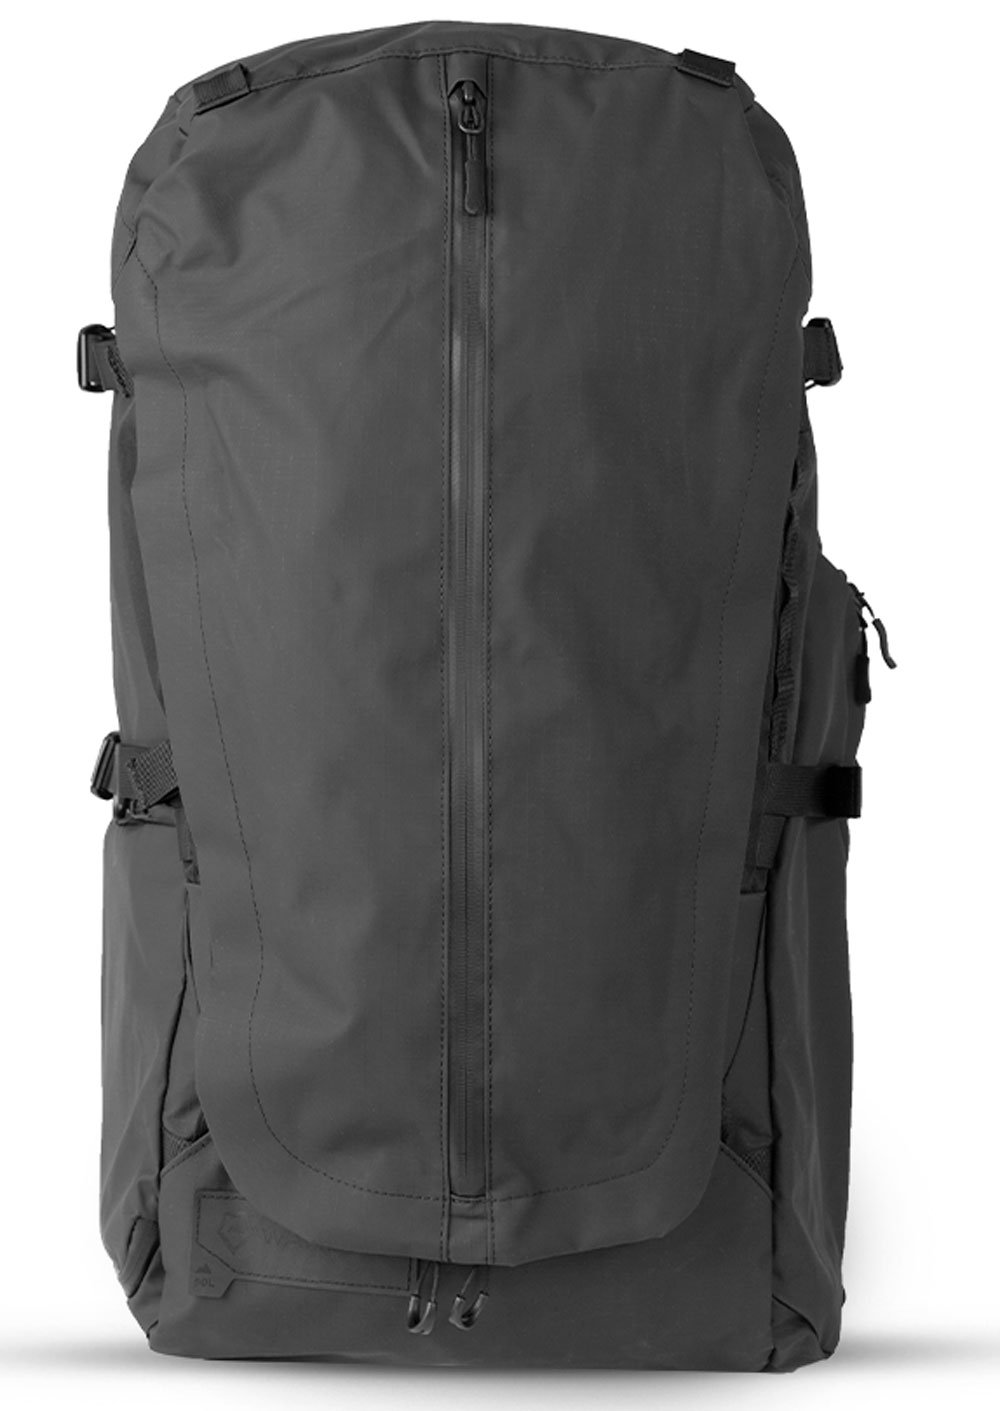 The FERNWEH pack is a long carry and long travel camera bag